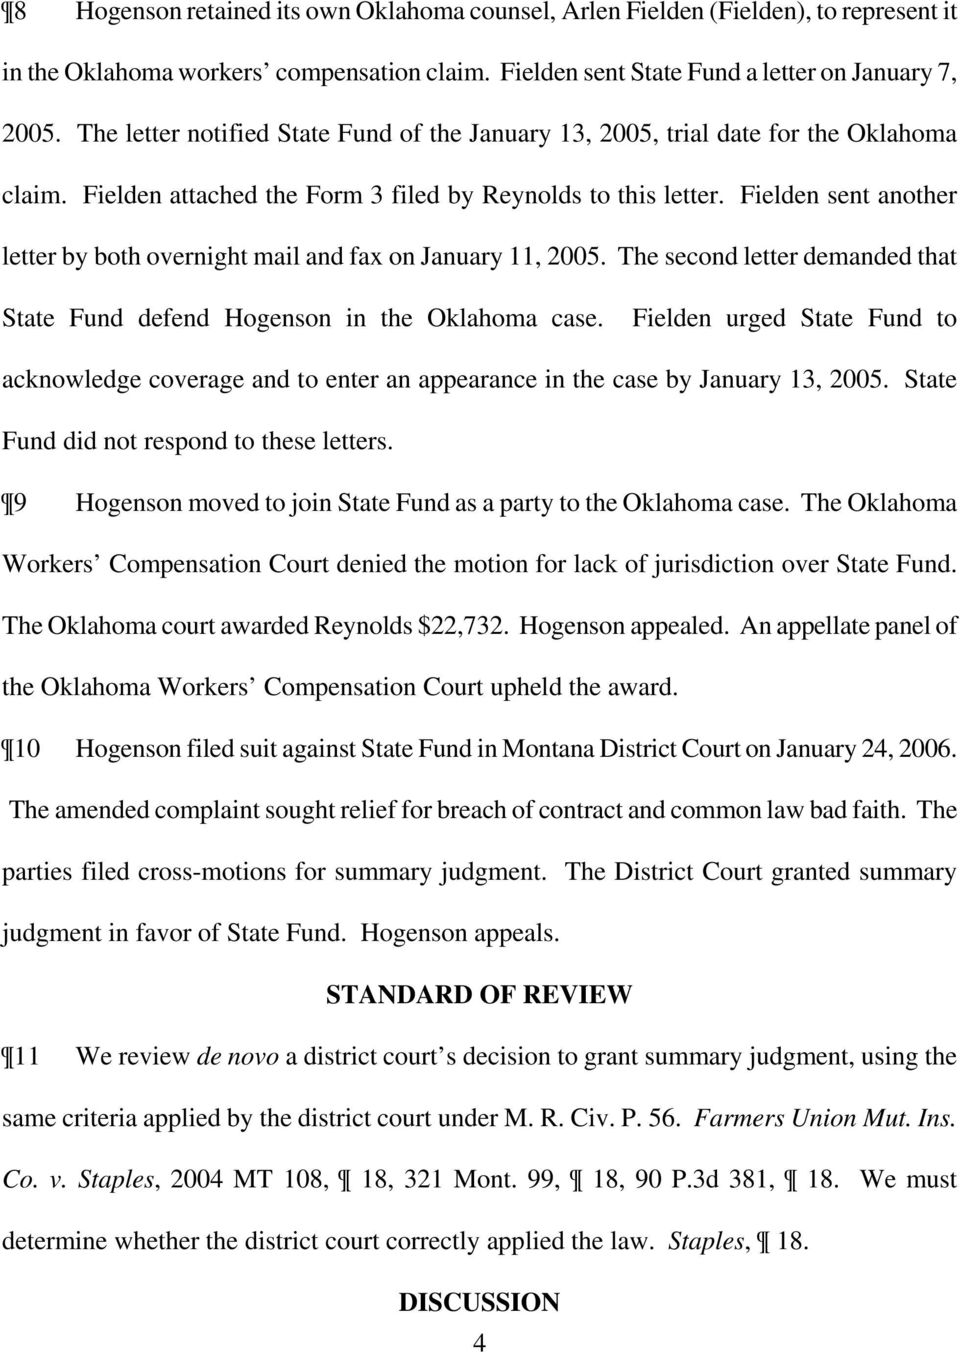 Fielden sent another letter by both overnight mail and fax on January 11, 2005. The second letter demanded that State Fund defend Hogenson in the Oklahoma case.